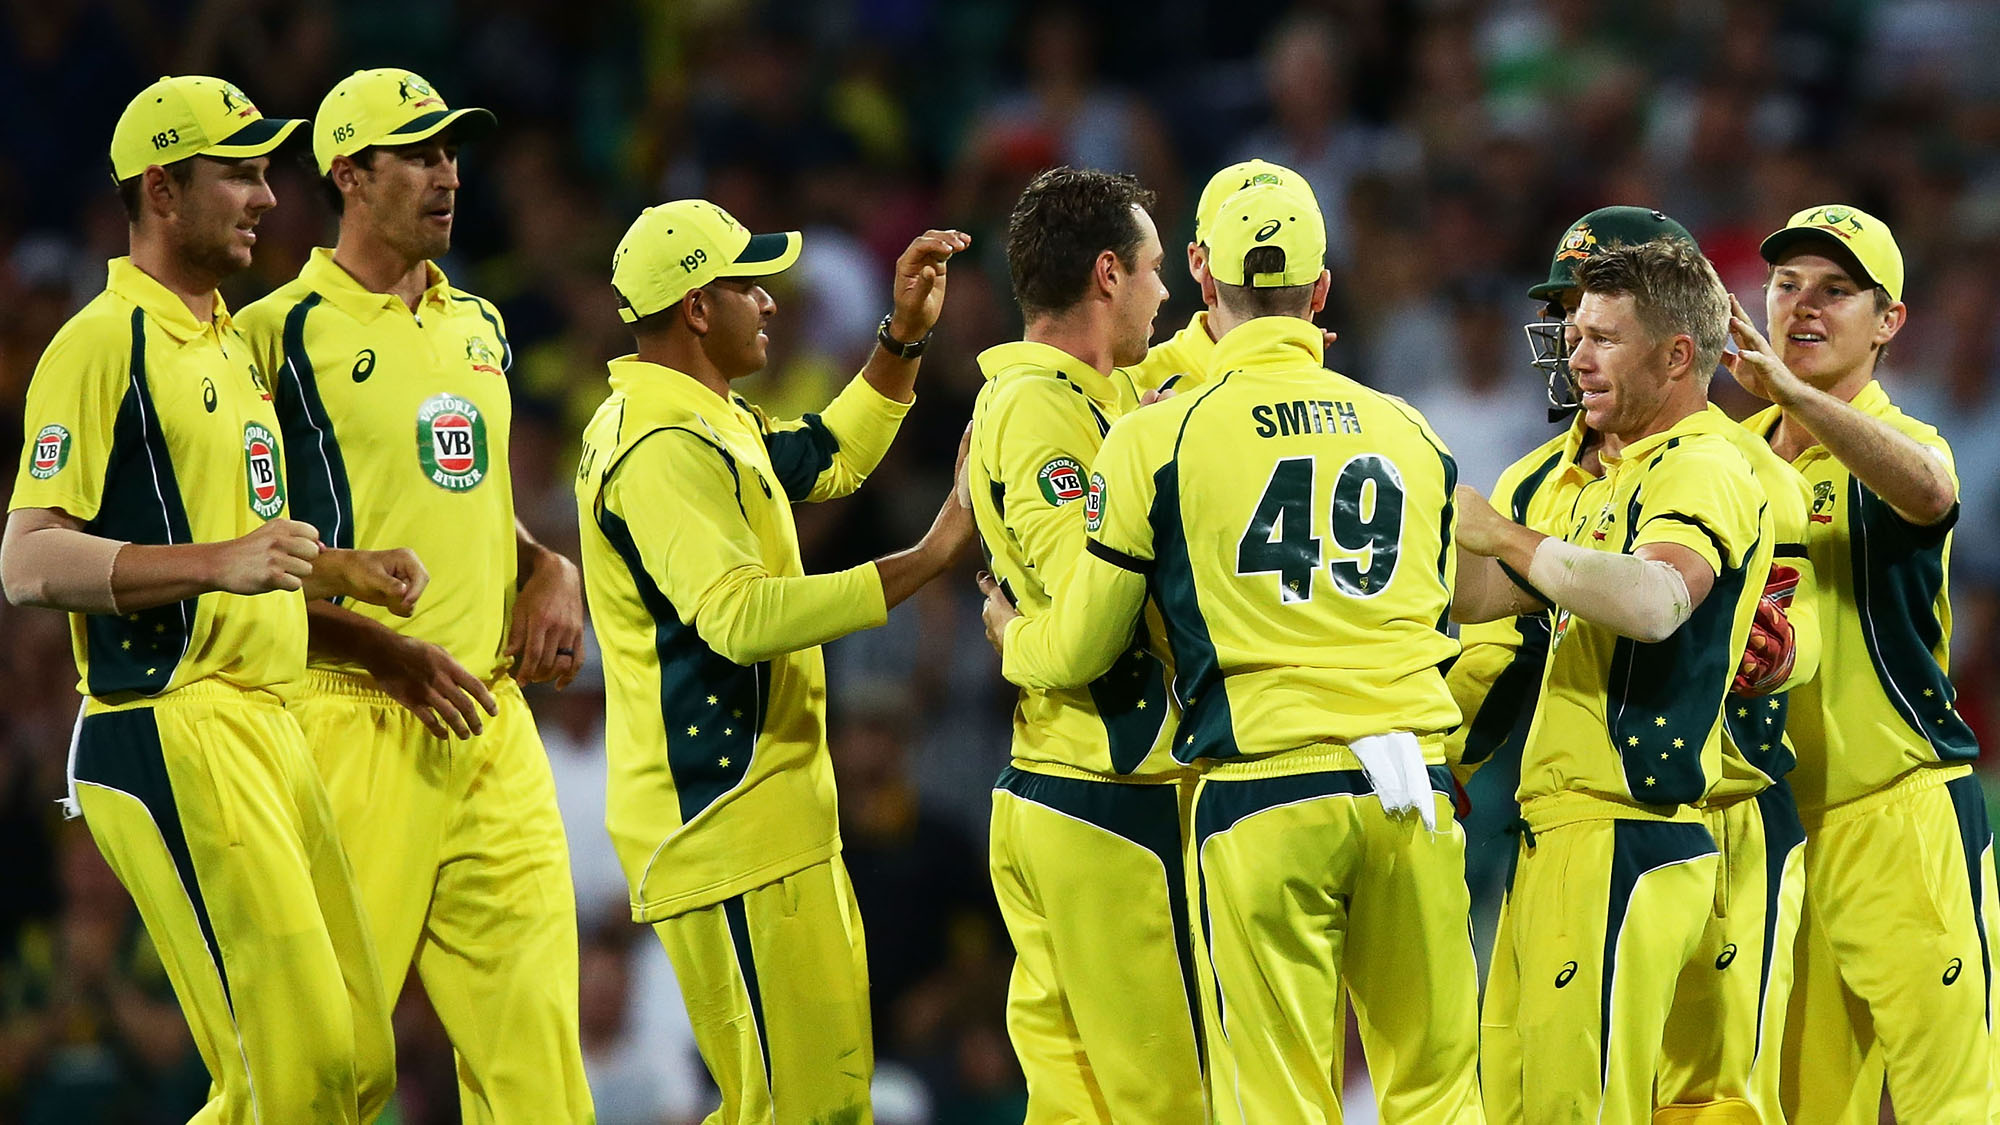 Cricket Australia proposes arbitration to resolve pay dispute with players